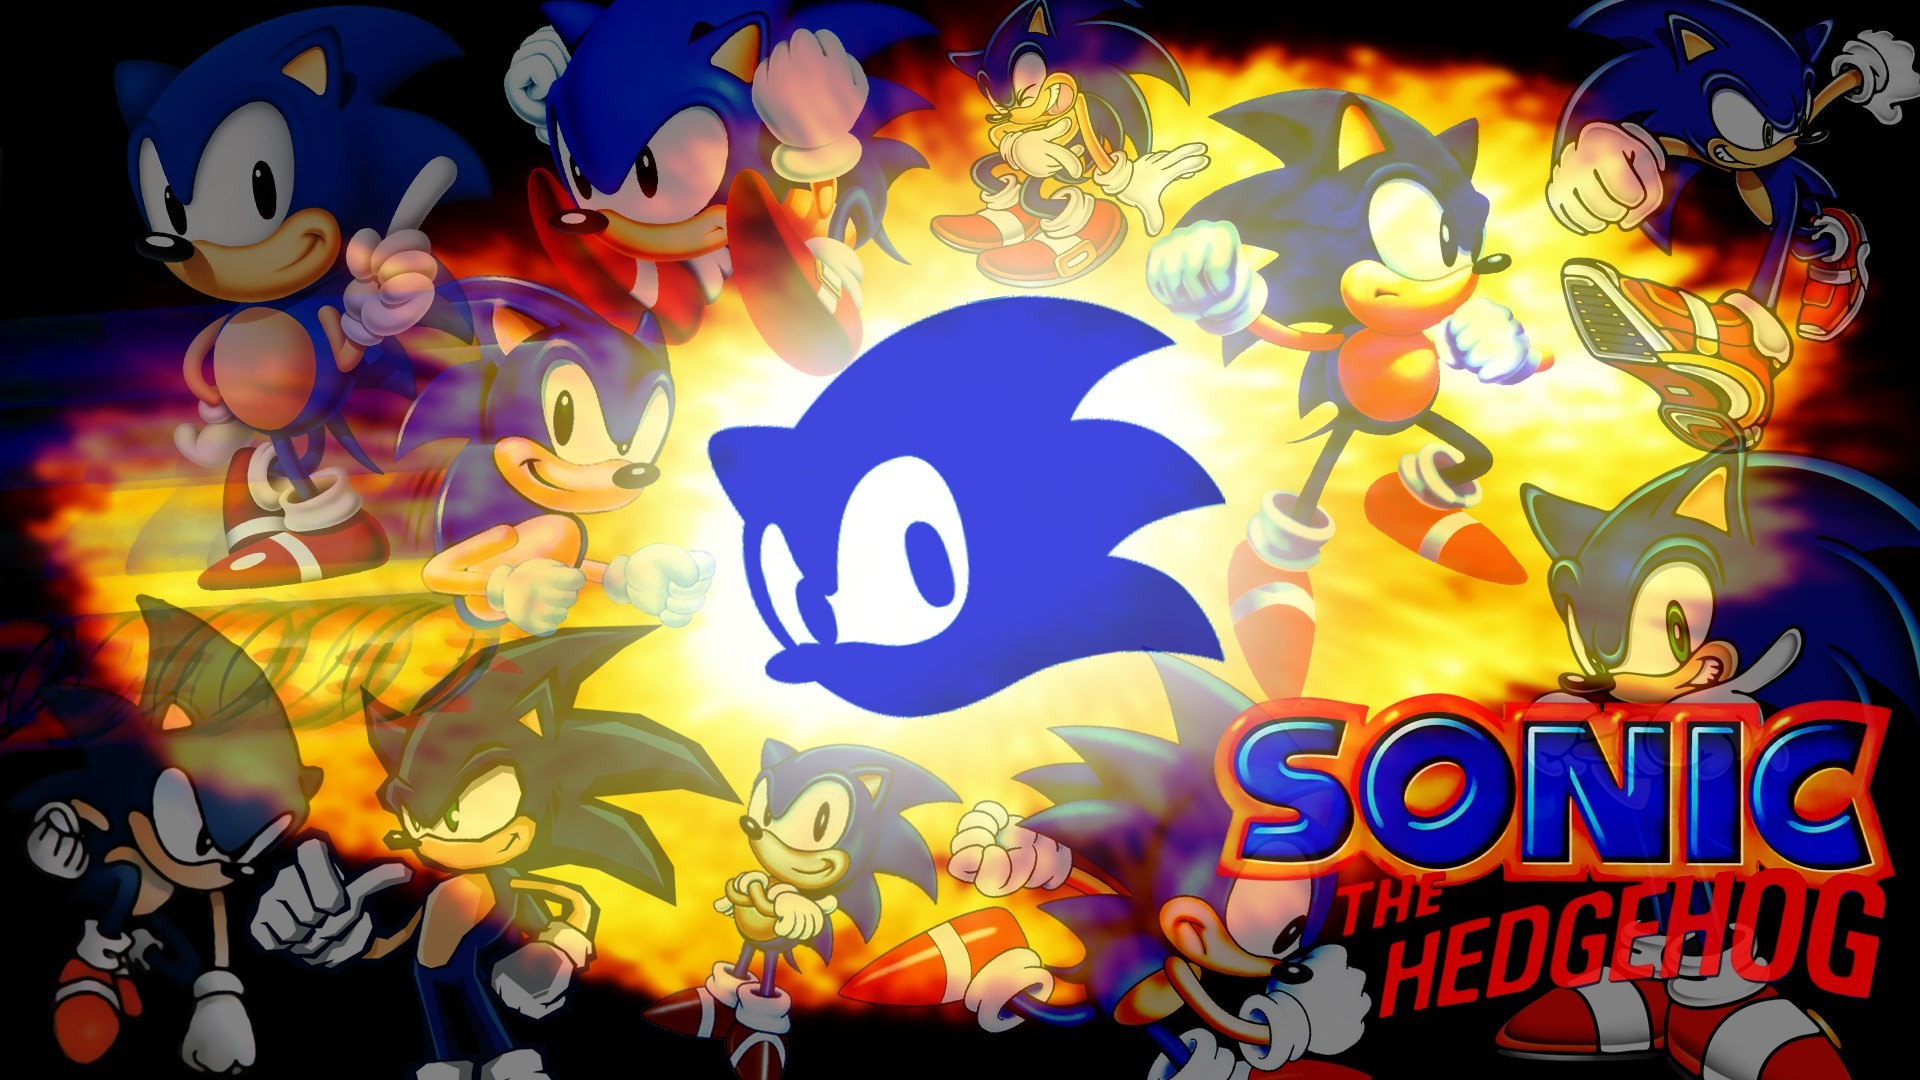 sonic the hedgehog wallpaper – Background hd – sonic the hedgehog category